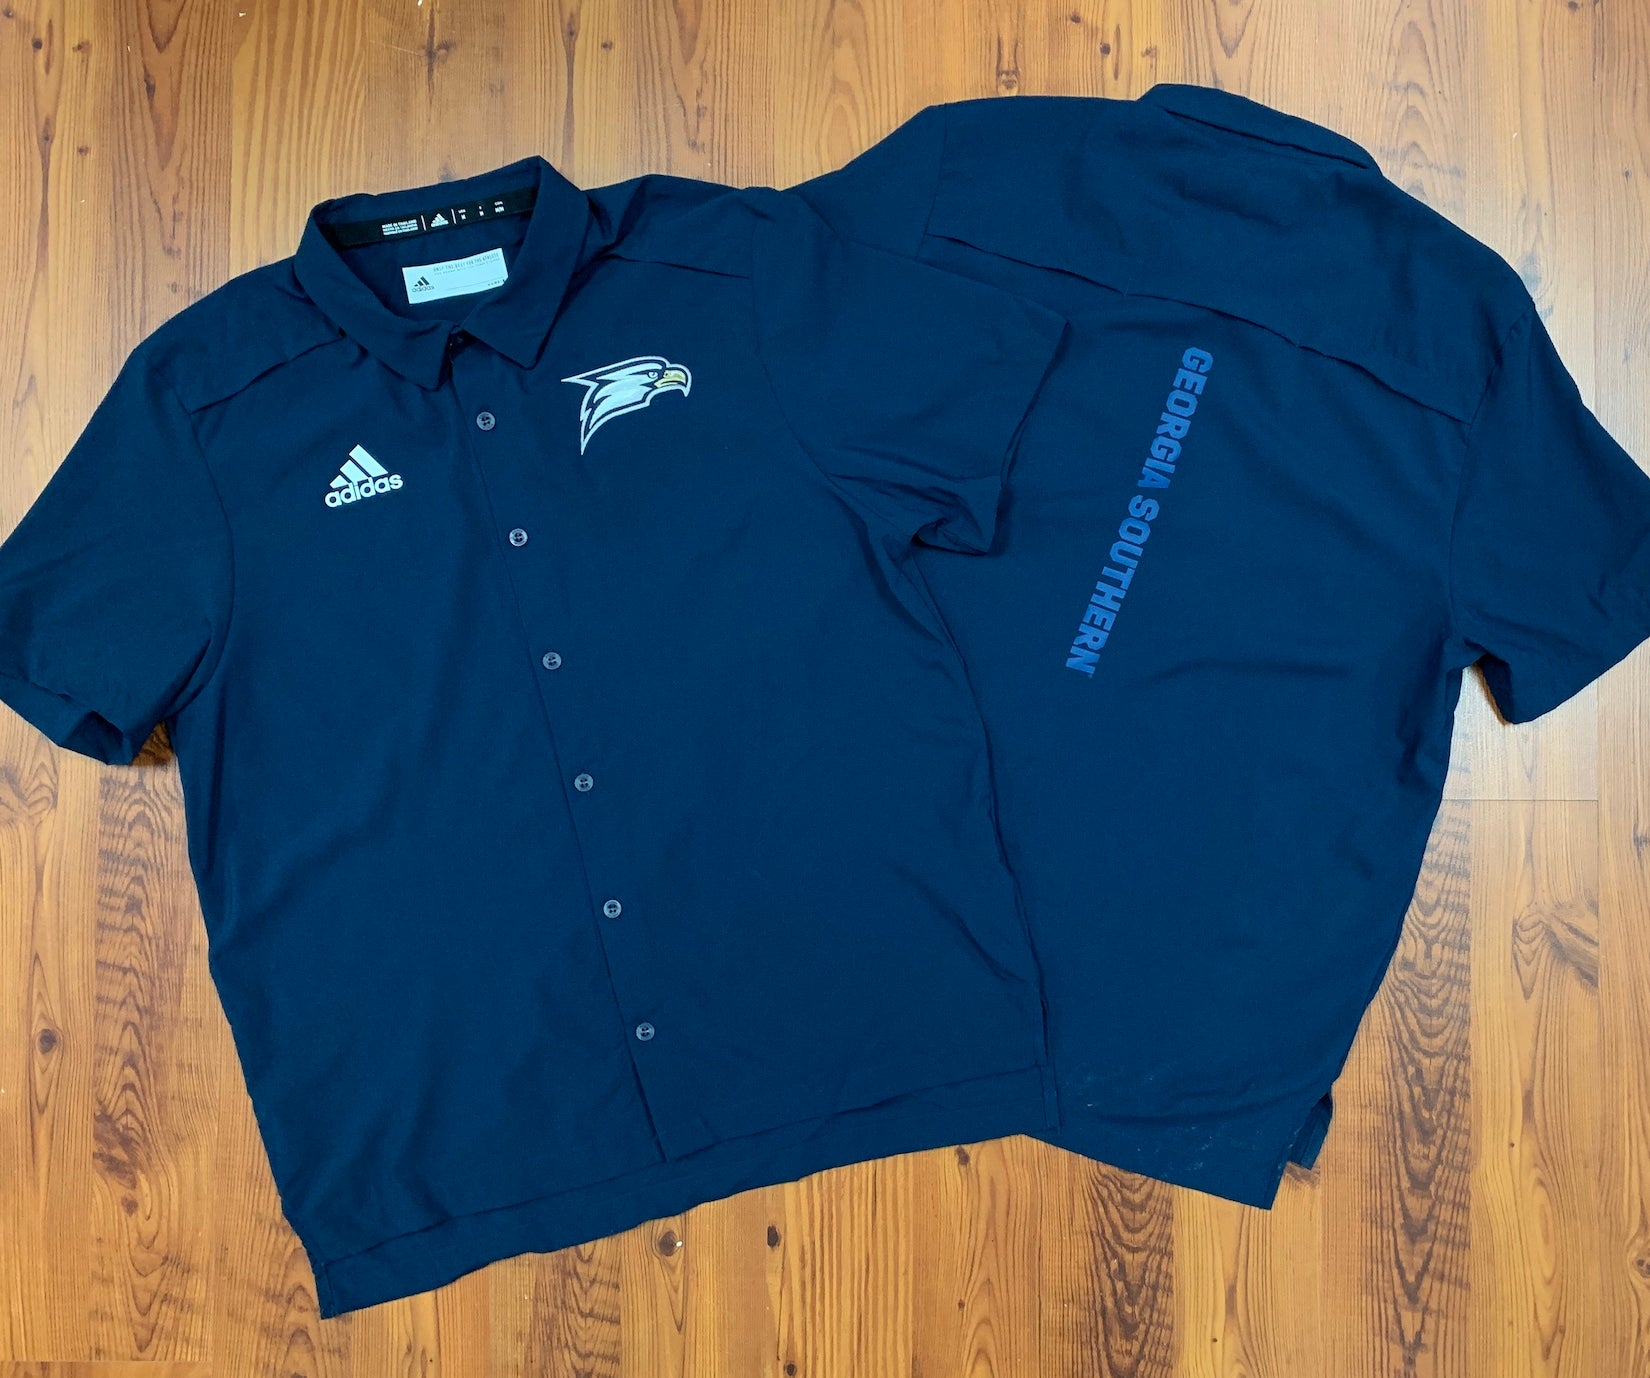 ADIDAS - Official Gear Full Button Short Sleeve - Navy